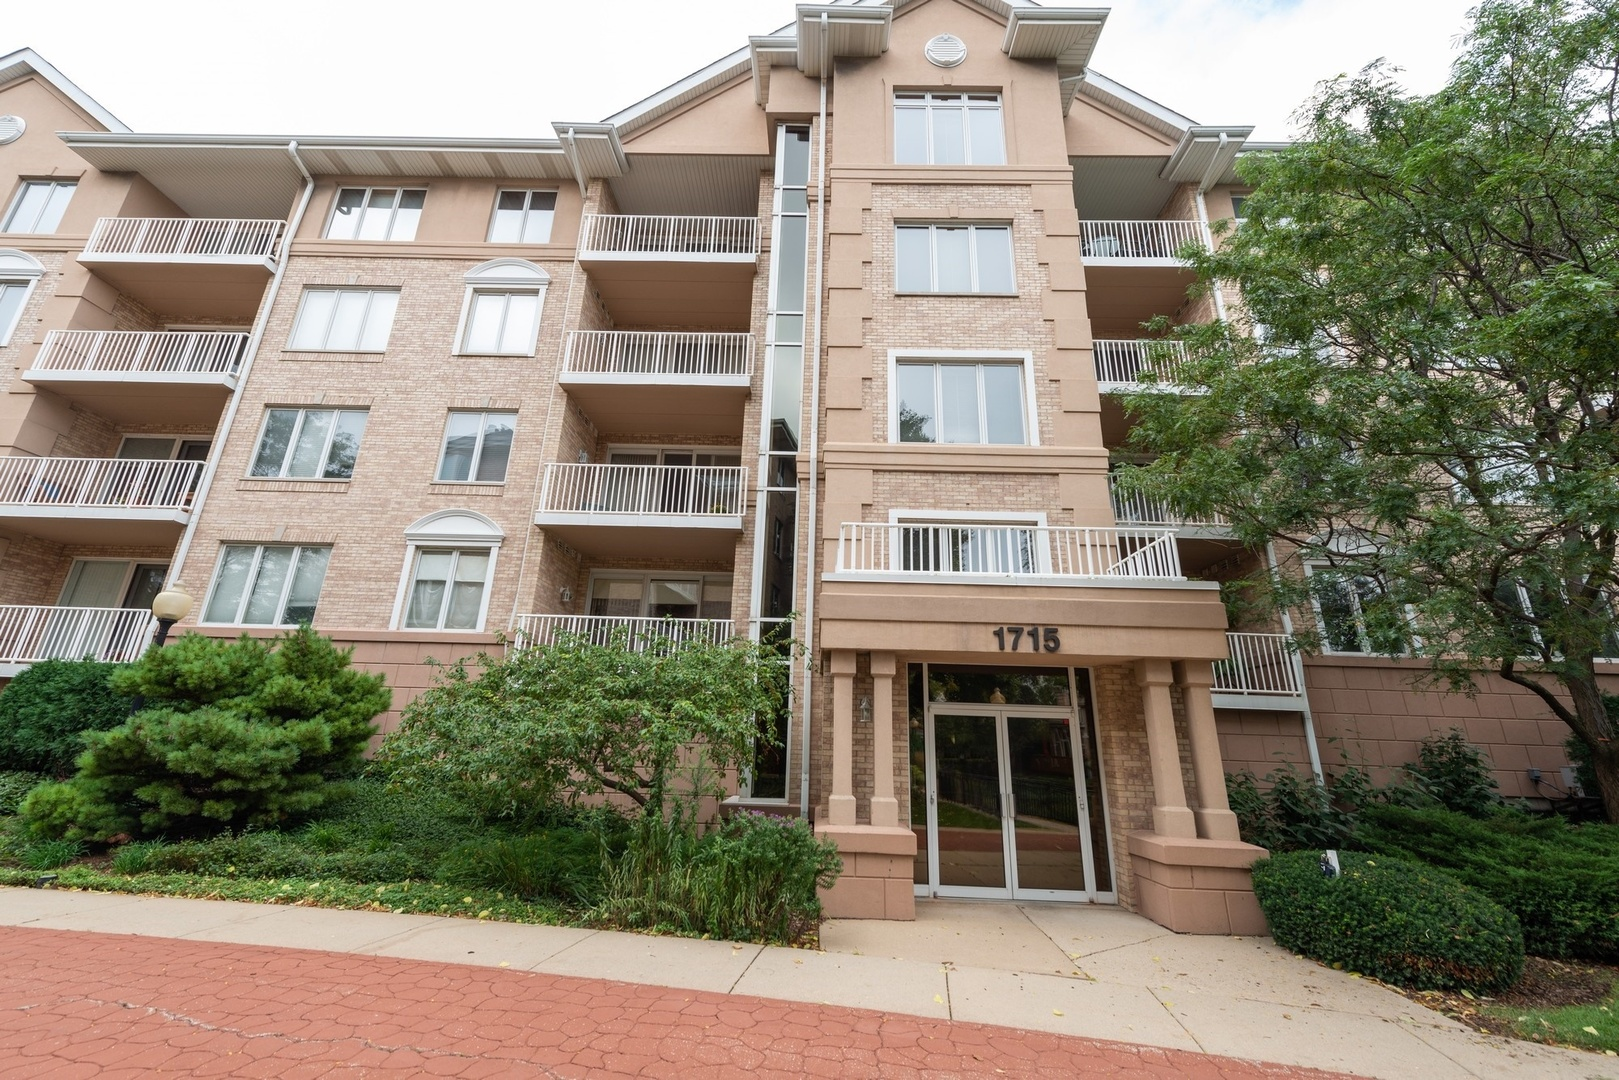 1715 Pavilion Way, Park Ridge in Cook County, IL 60068 Home for Sale